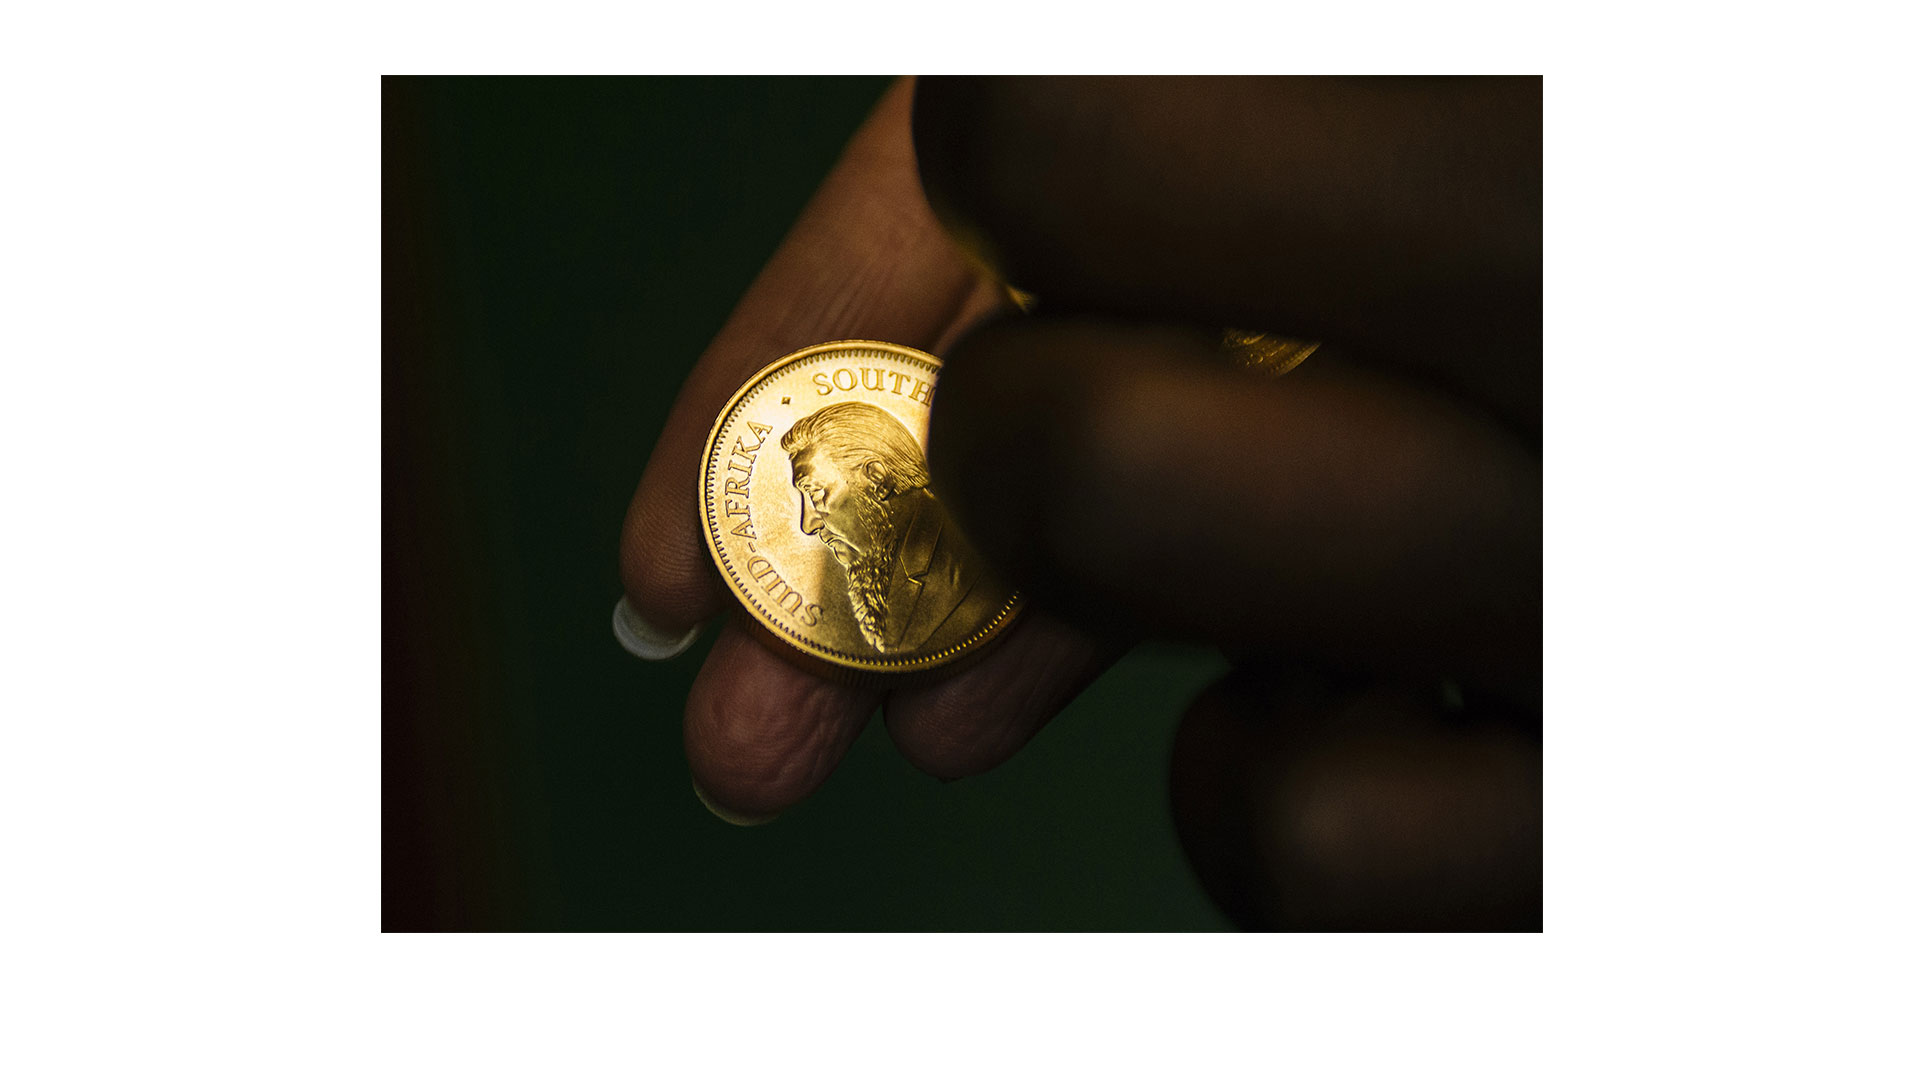 Gold Coin Salvation Army